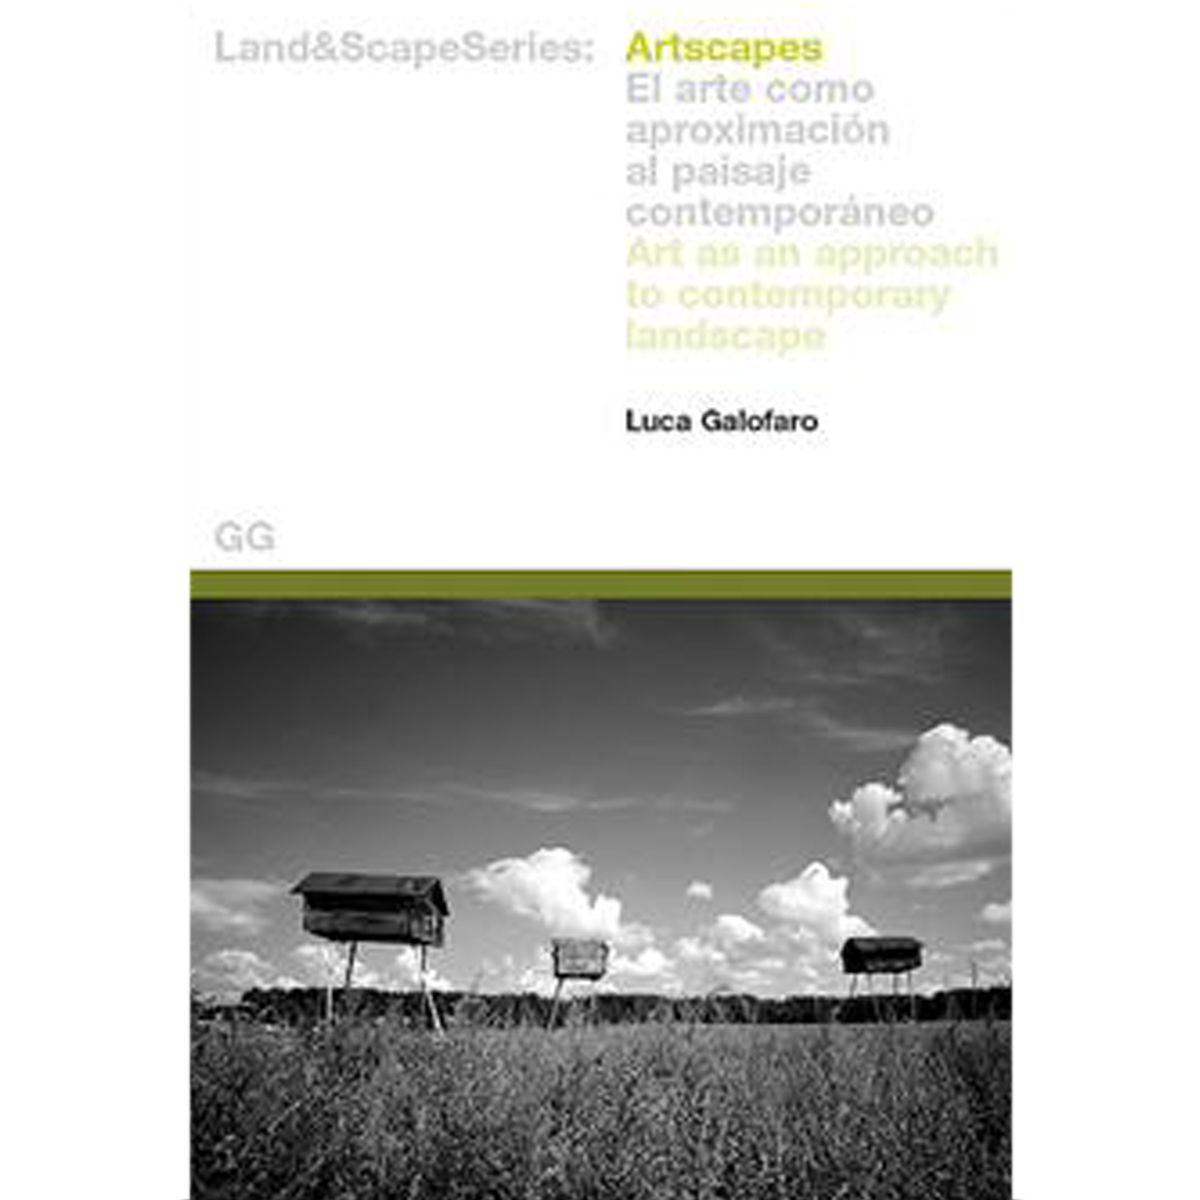 Land&Scapeseries: Artscapes